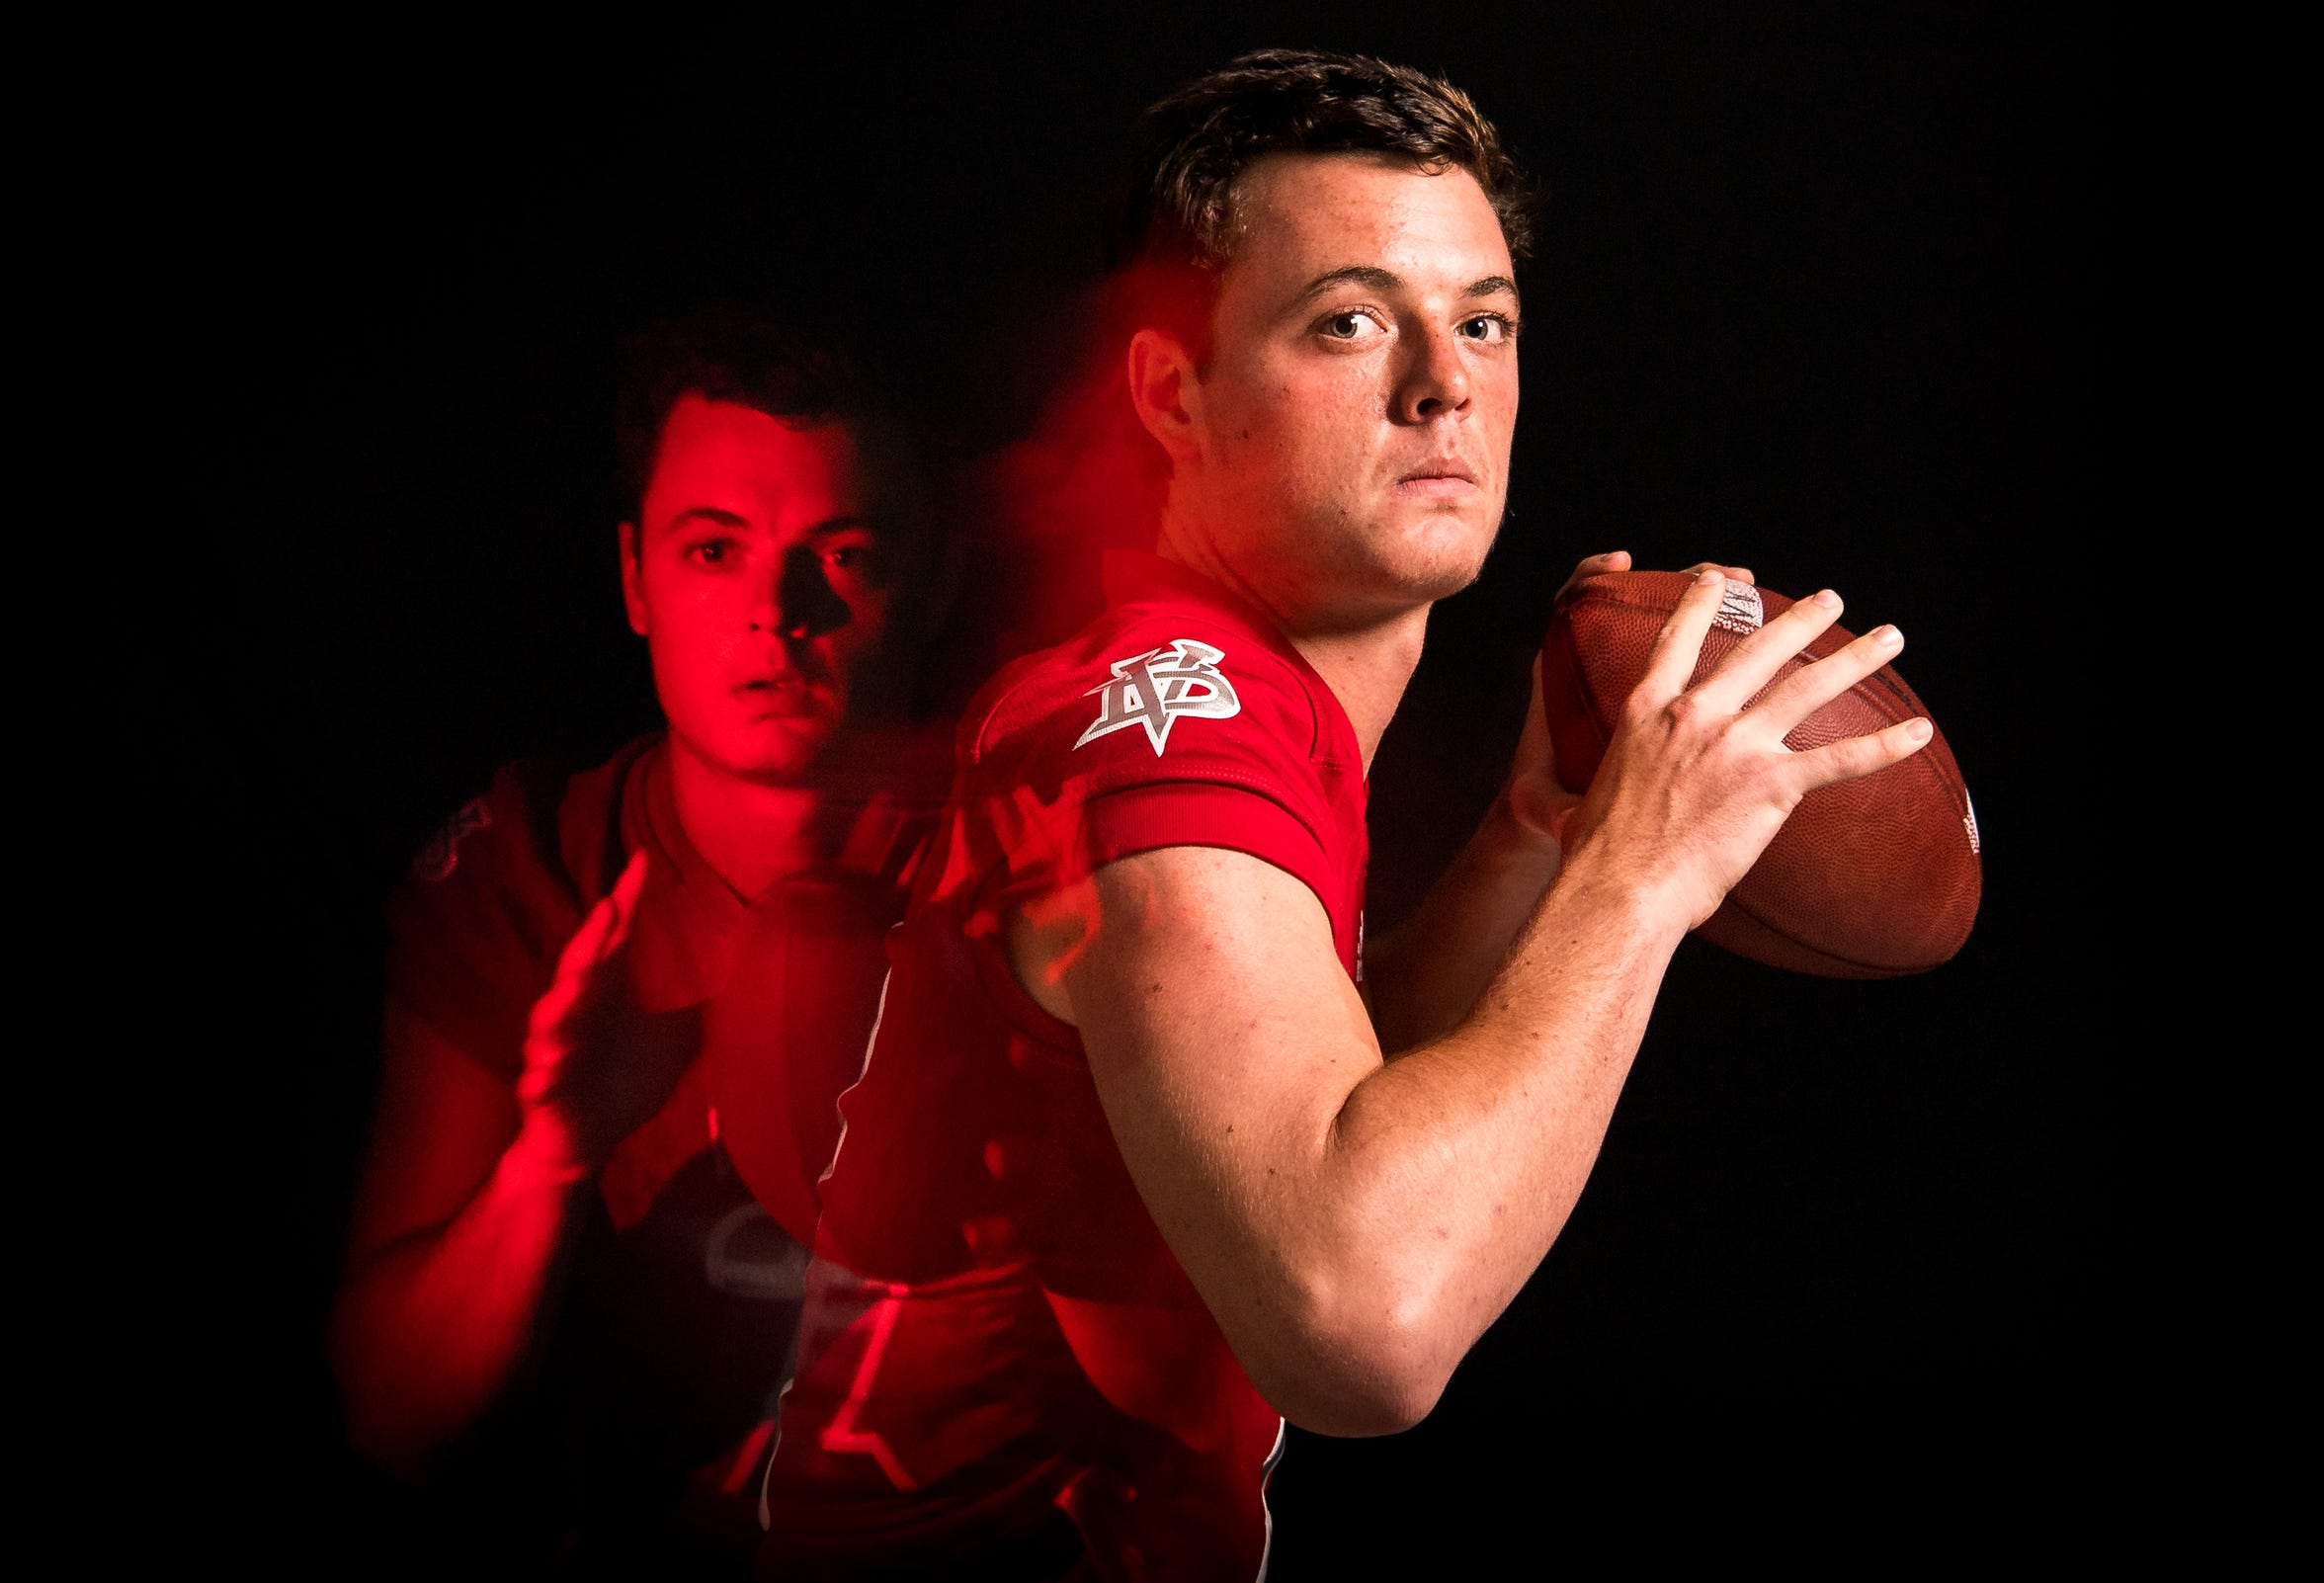 Ryan Jankowski, quarterback for Vero Beach High School football, is photographed Wednesday, April 3, 2019, at TCPalm in Stuart.